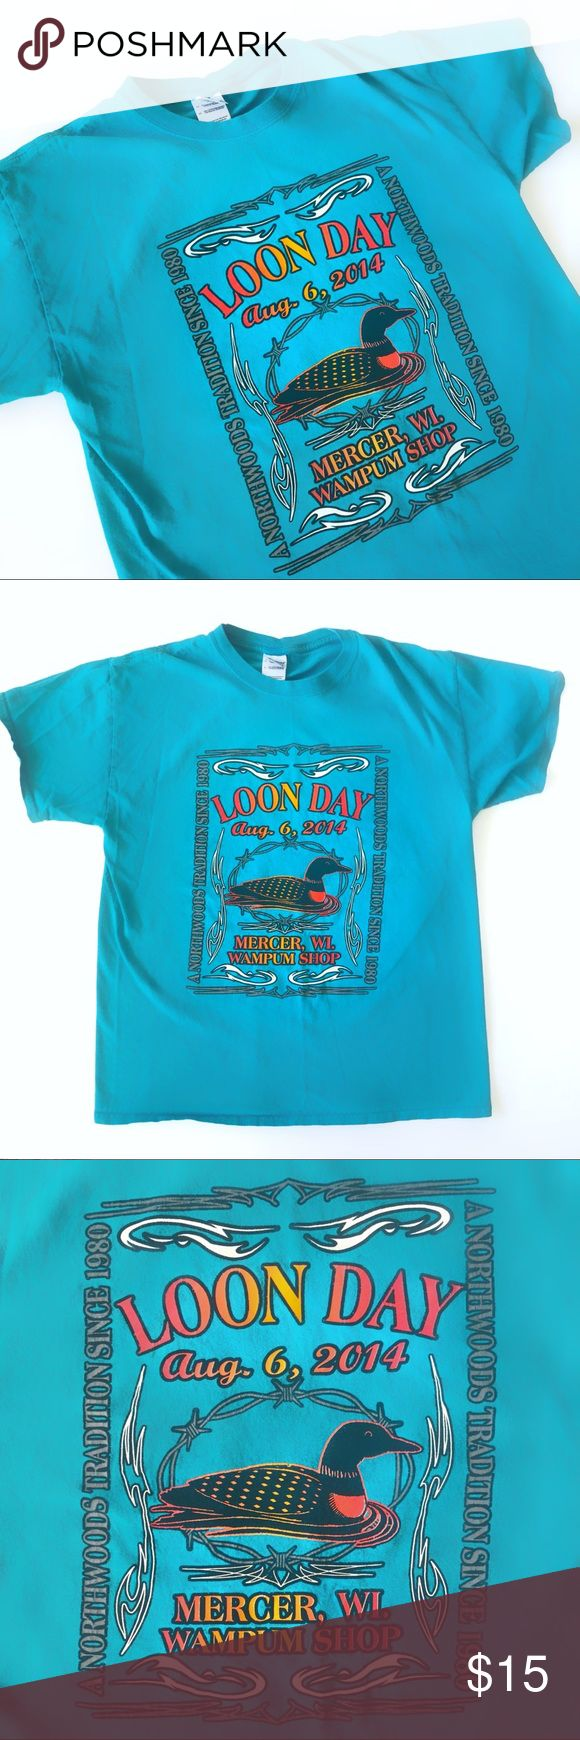 🦆Retro Neon Wisconsin Loon Day 90s Style Tee!🦆 So rad! Vintage inspired t shirt from the Wampum Shop in Mercer, Wisconsin! In honor of Loon Day. You know, a holiday dedicated to the Loon. In great shape! Unisex item! Offers welcome :) 🌟🦆🌟   Tags: 80s 80's 90's day glow glo urban Tops Tees - Short Sleeve